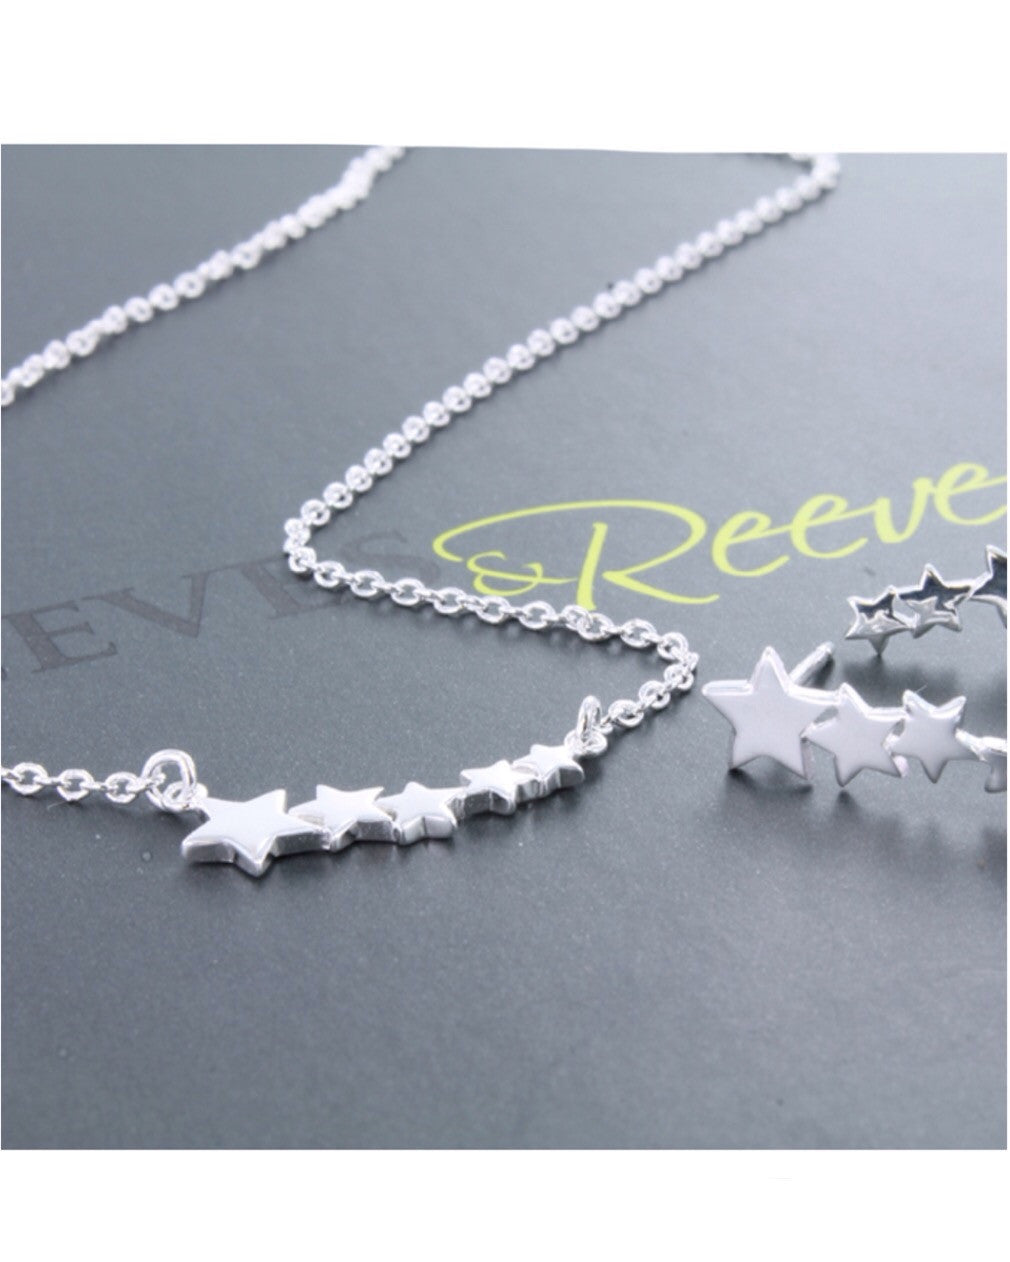 Silver Shooting Star Necklace Buy Online at Monkey Puzzle Jewellery